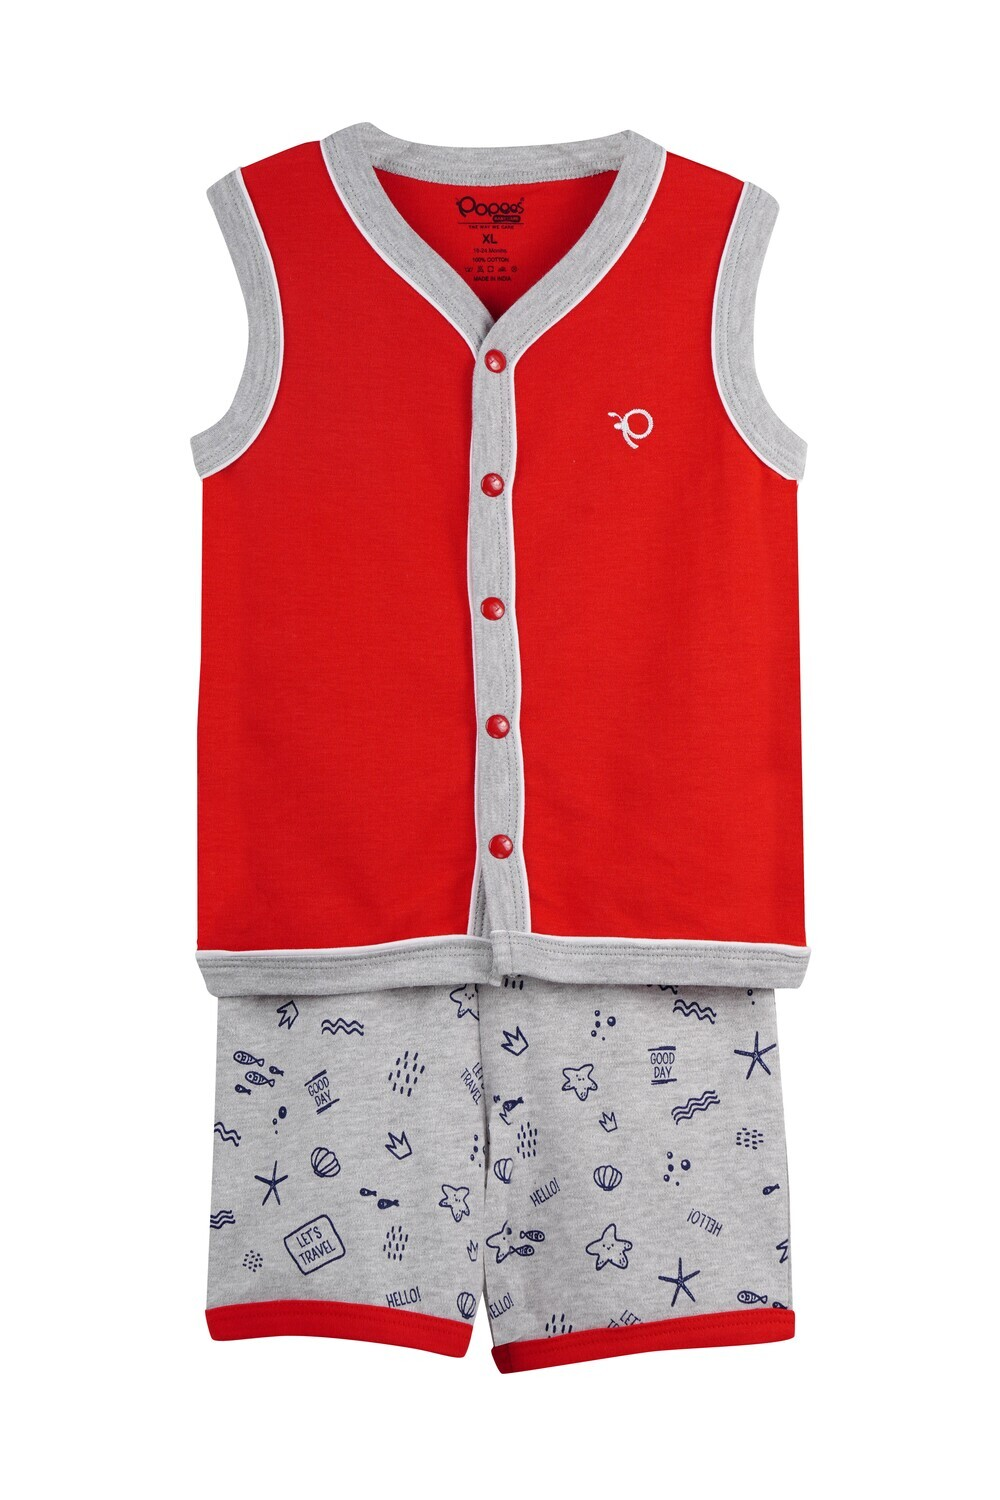 WELCH True Red Top and Shorts Sleeveless for Baby Boys